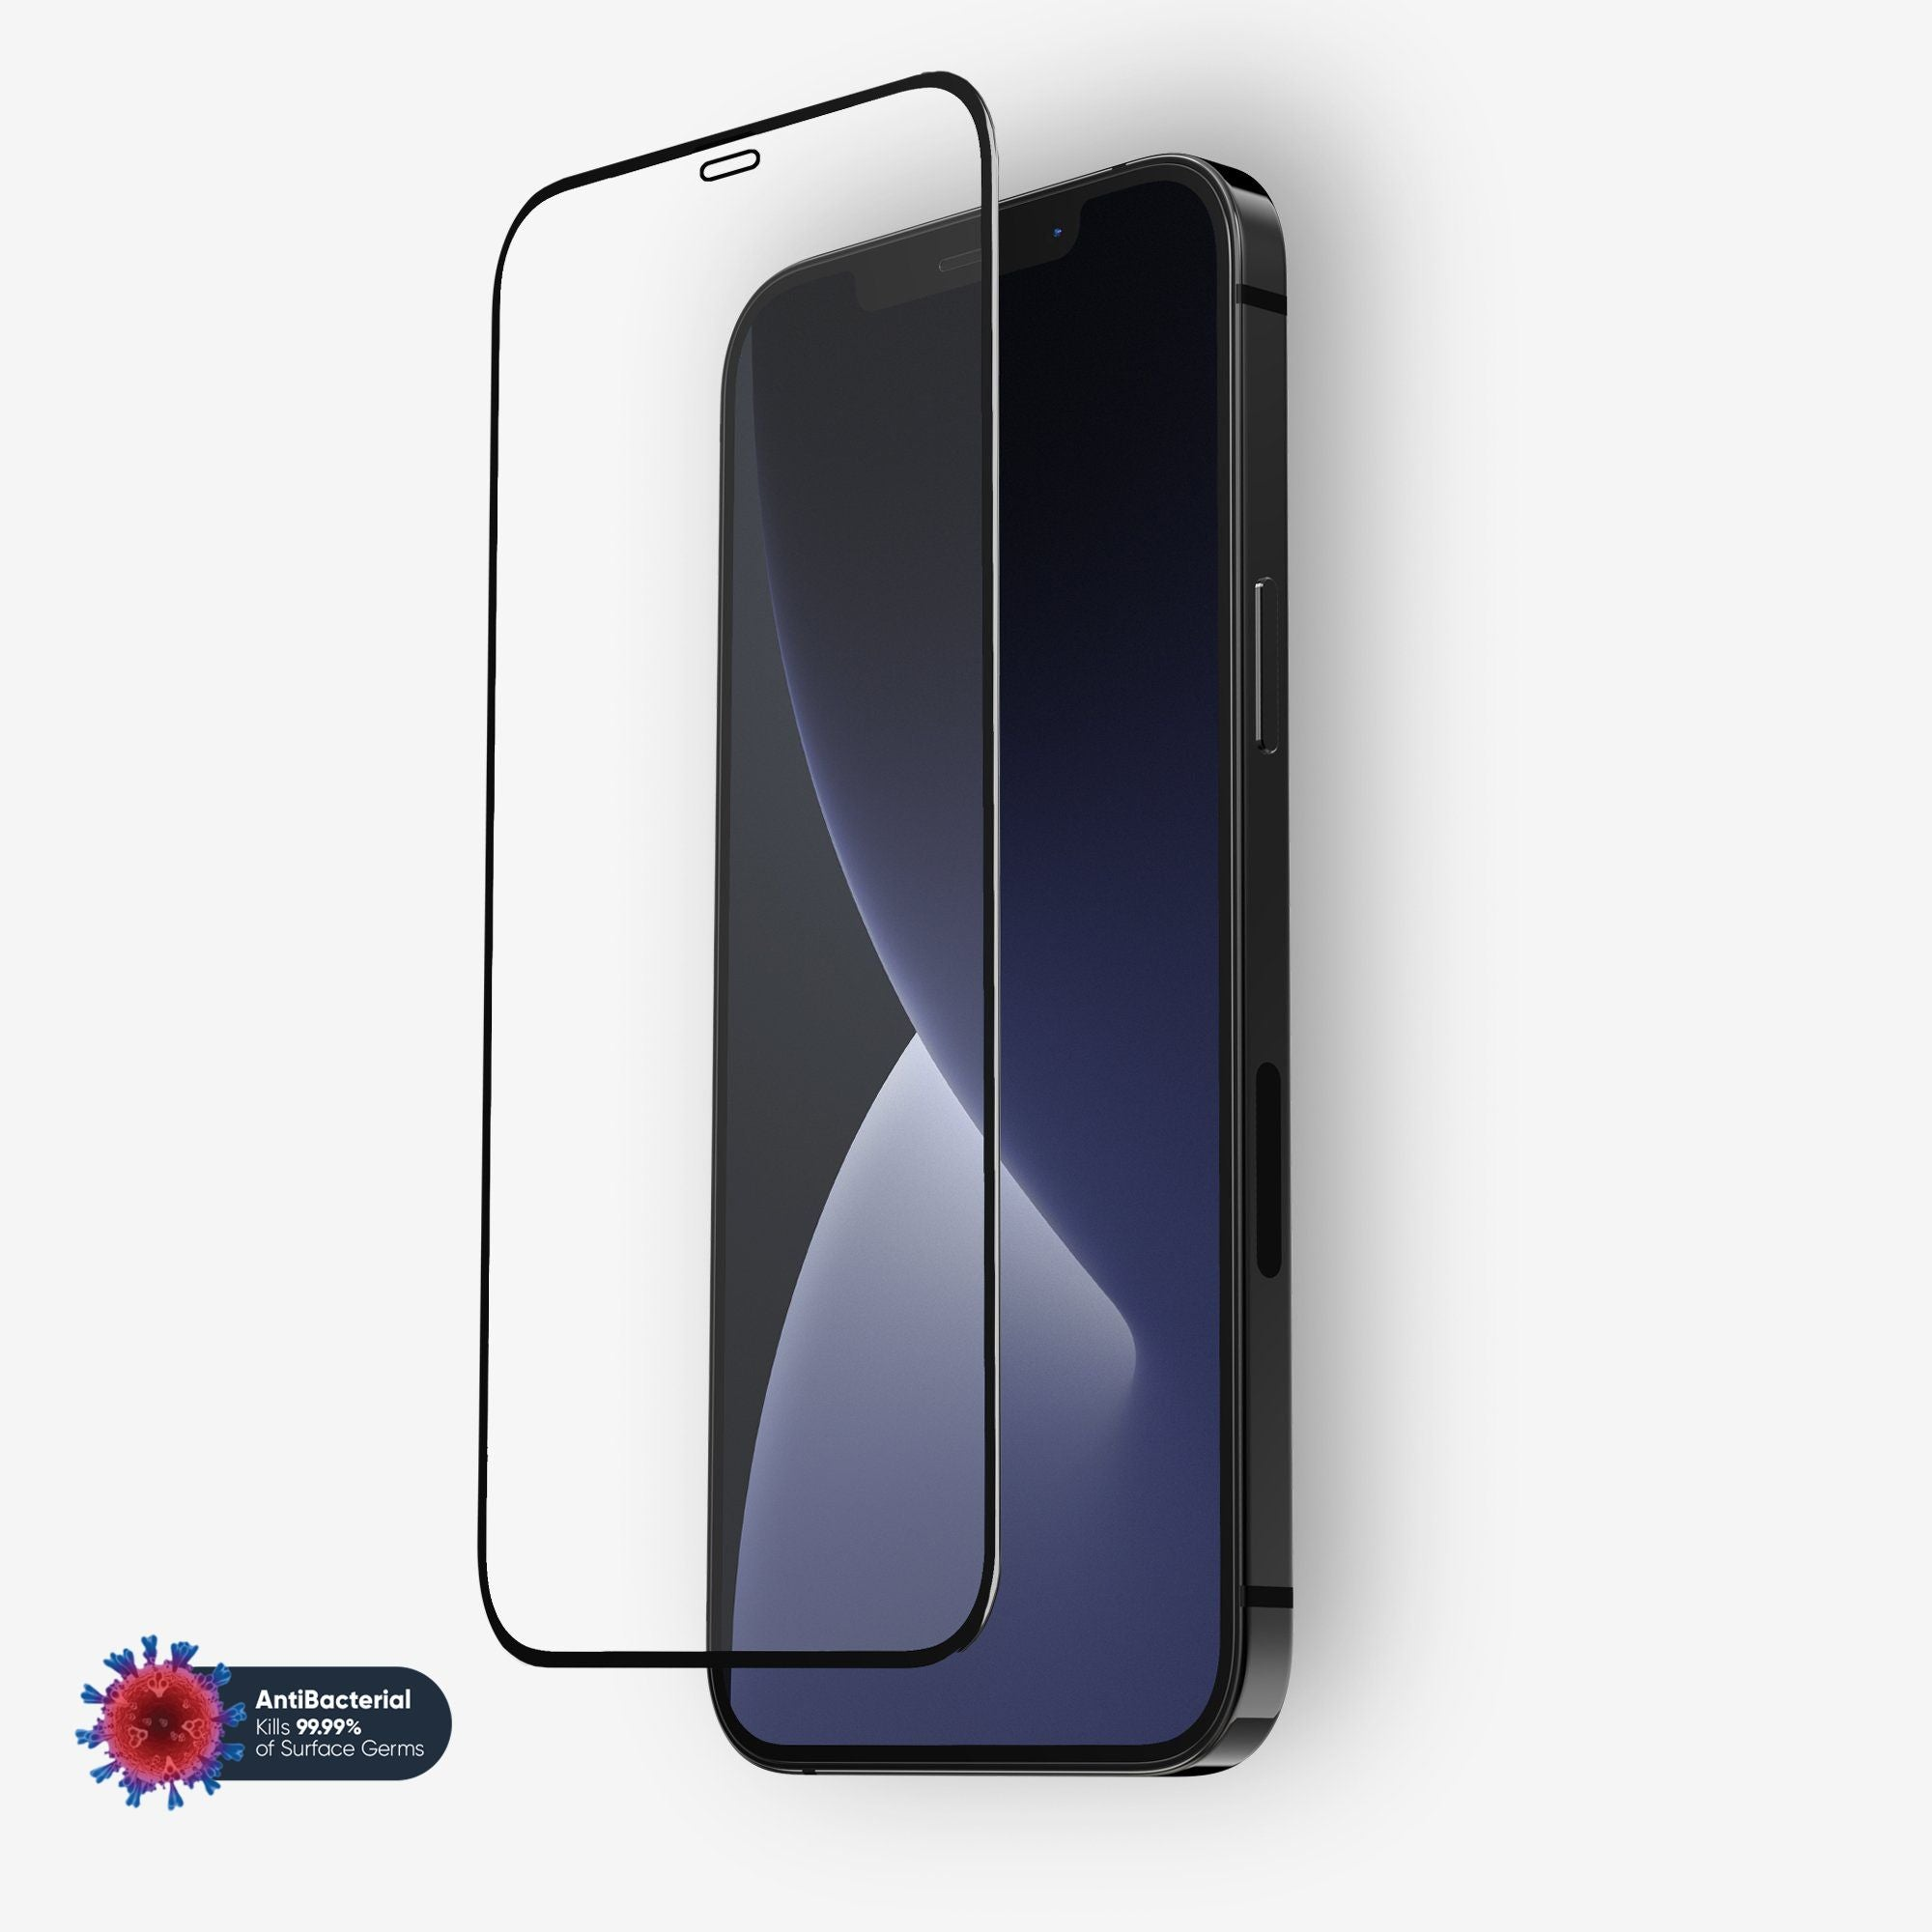 NanoArmour iPhone 12 Pro Max Anti-Glare Screen Protector